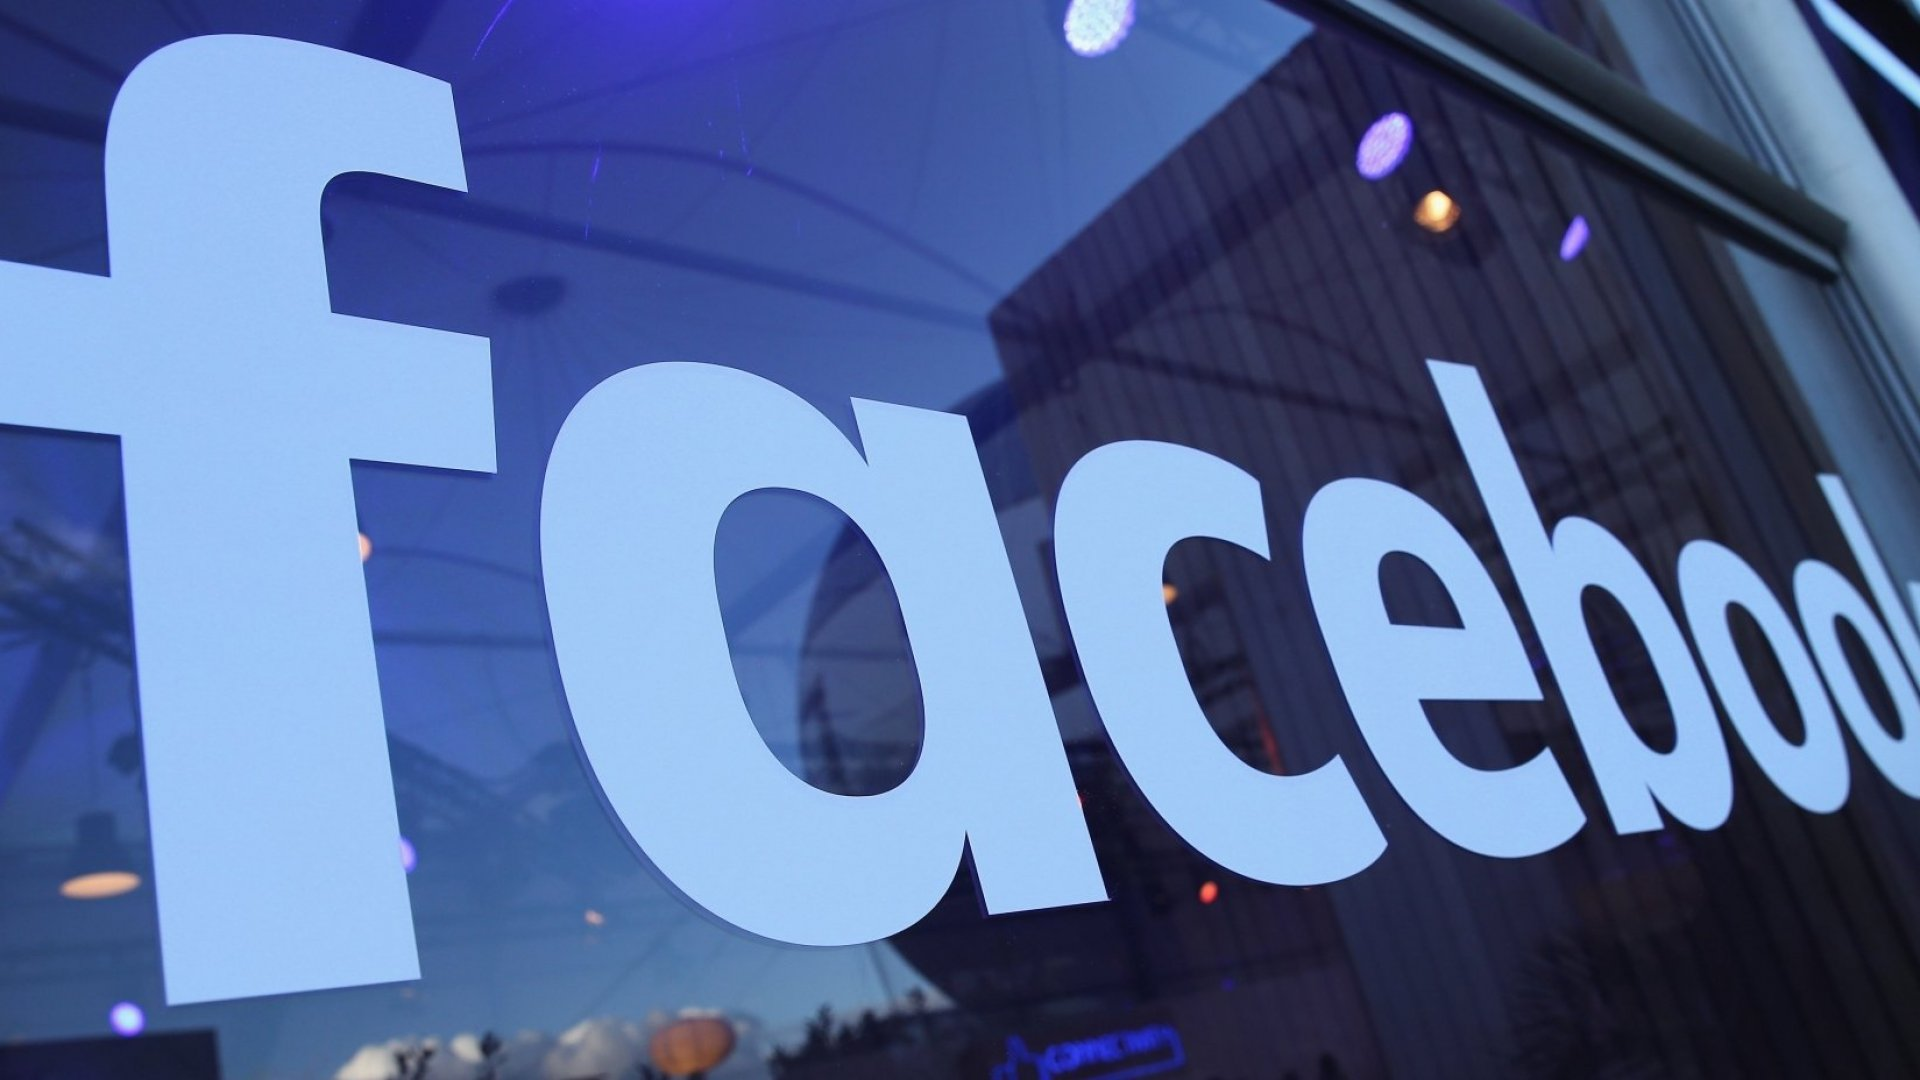 Fake Russian Accounts Bought $100,000 in Facebook Ads--to Make Americans Hate One Another